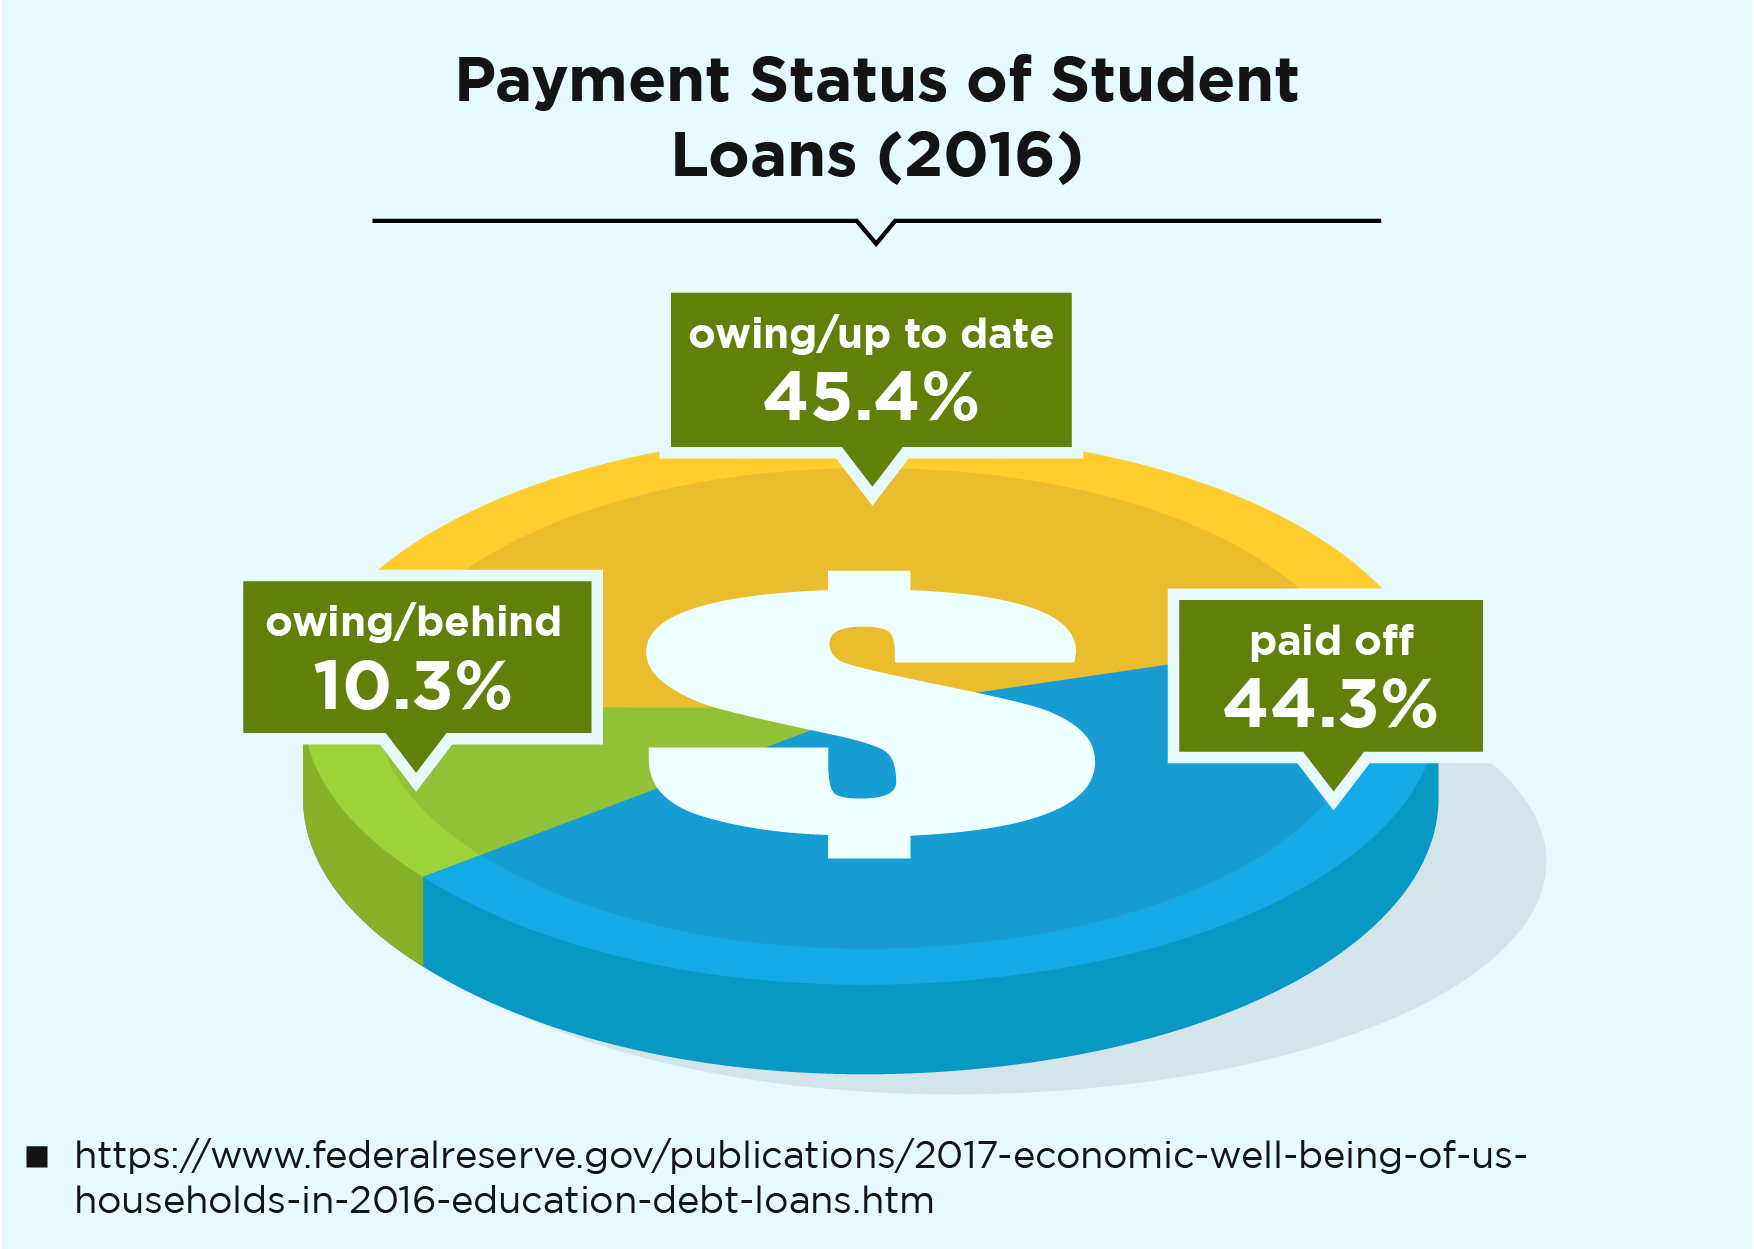 Payment Status of Student Loans (2016)